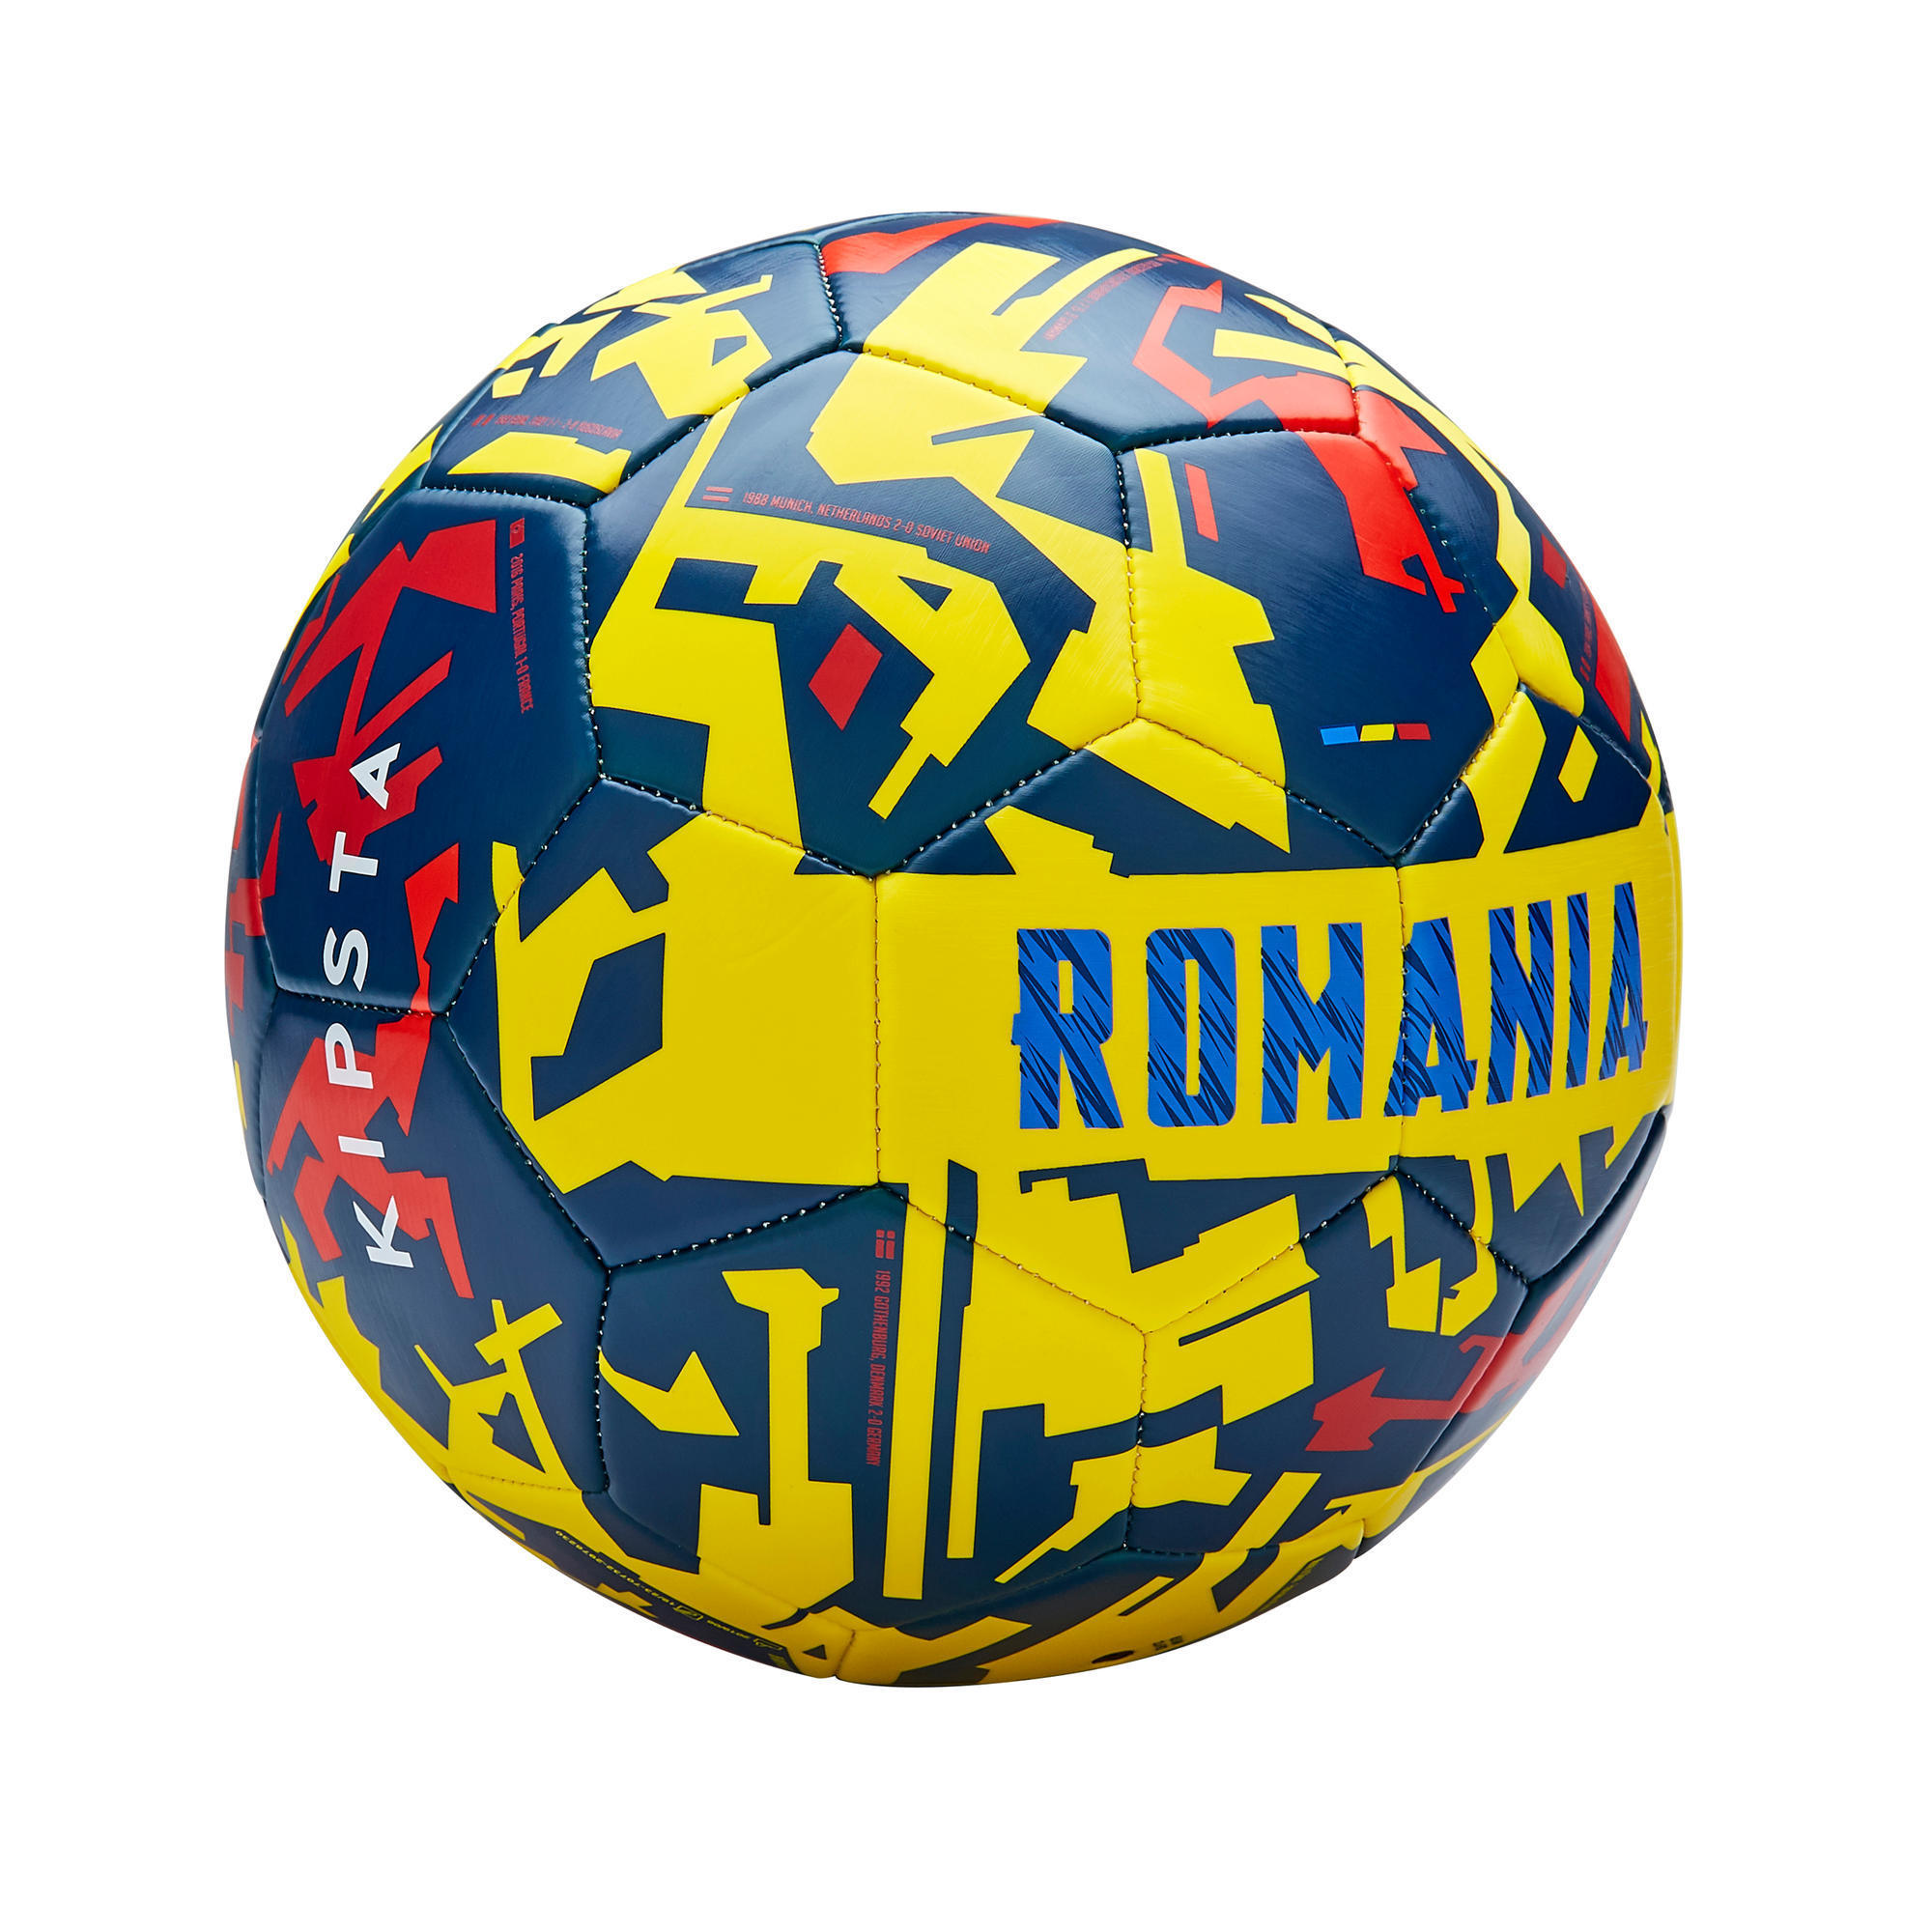 Ballon de <strong>football</strong> roumanie 2020 size 5 kipsta